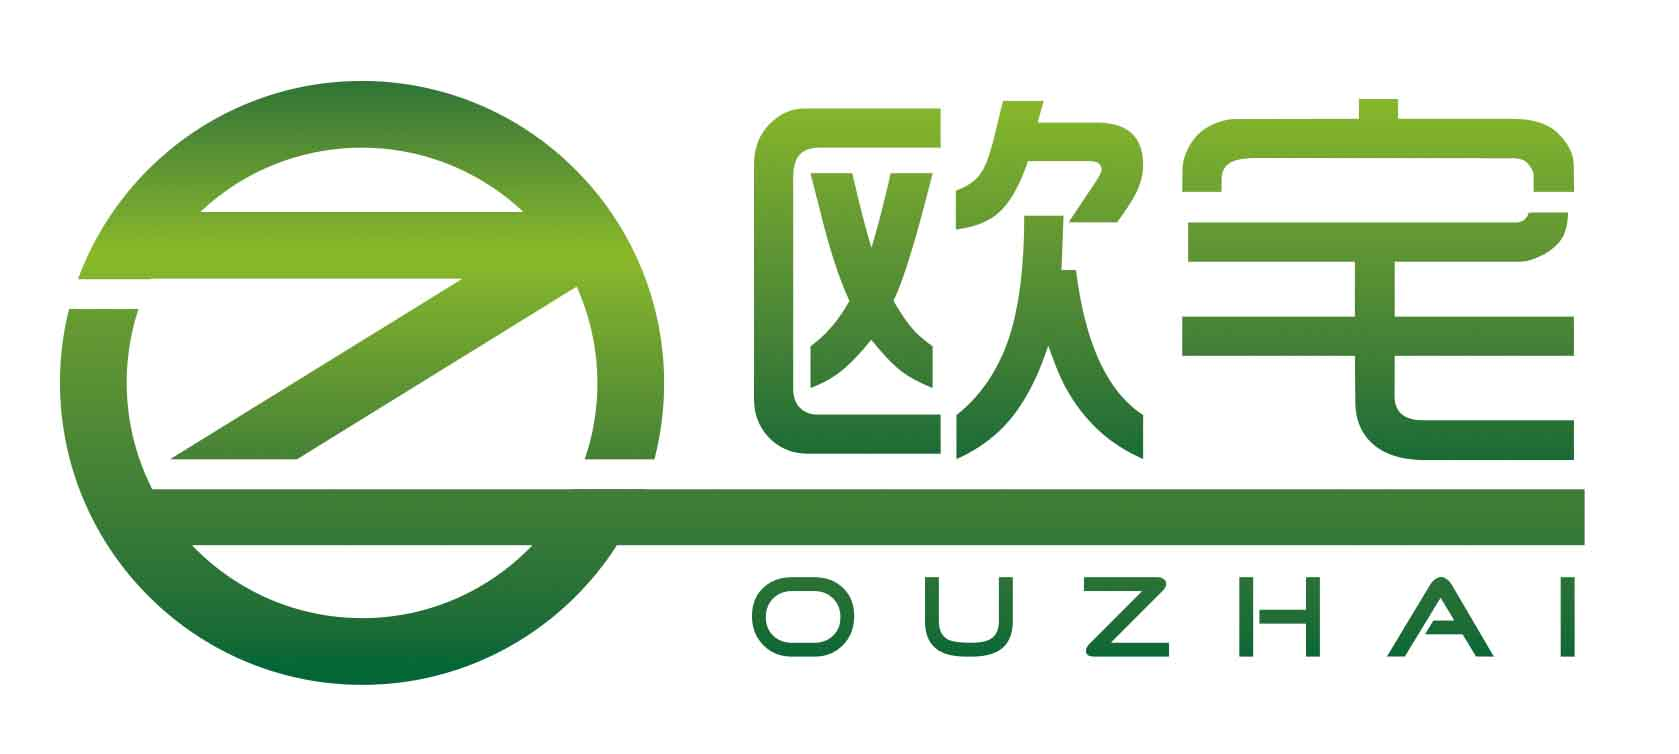 Hubei Ouzhai New Material Technology Co.,ltd logo